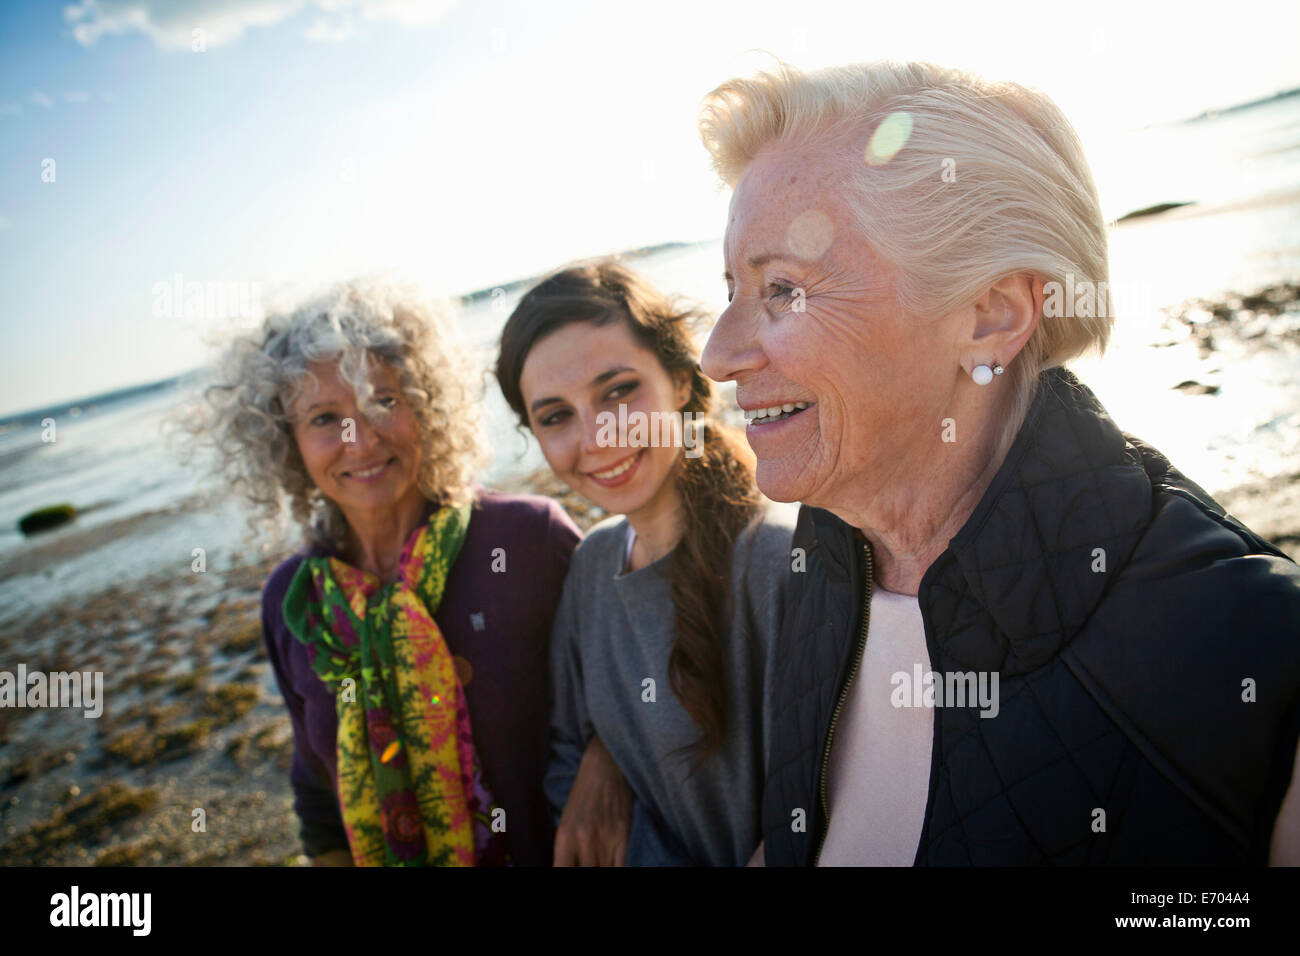 Female family members chatting on beach - Stock Image